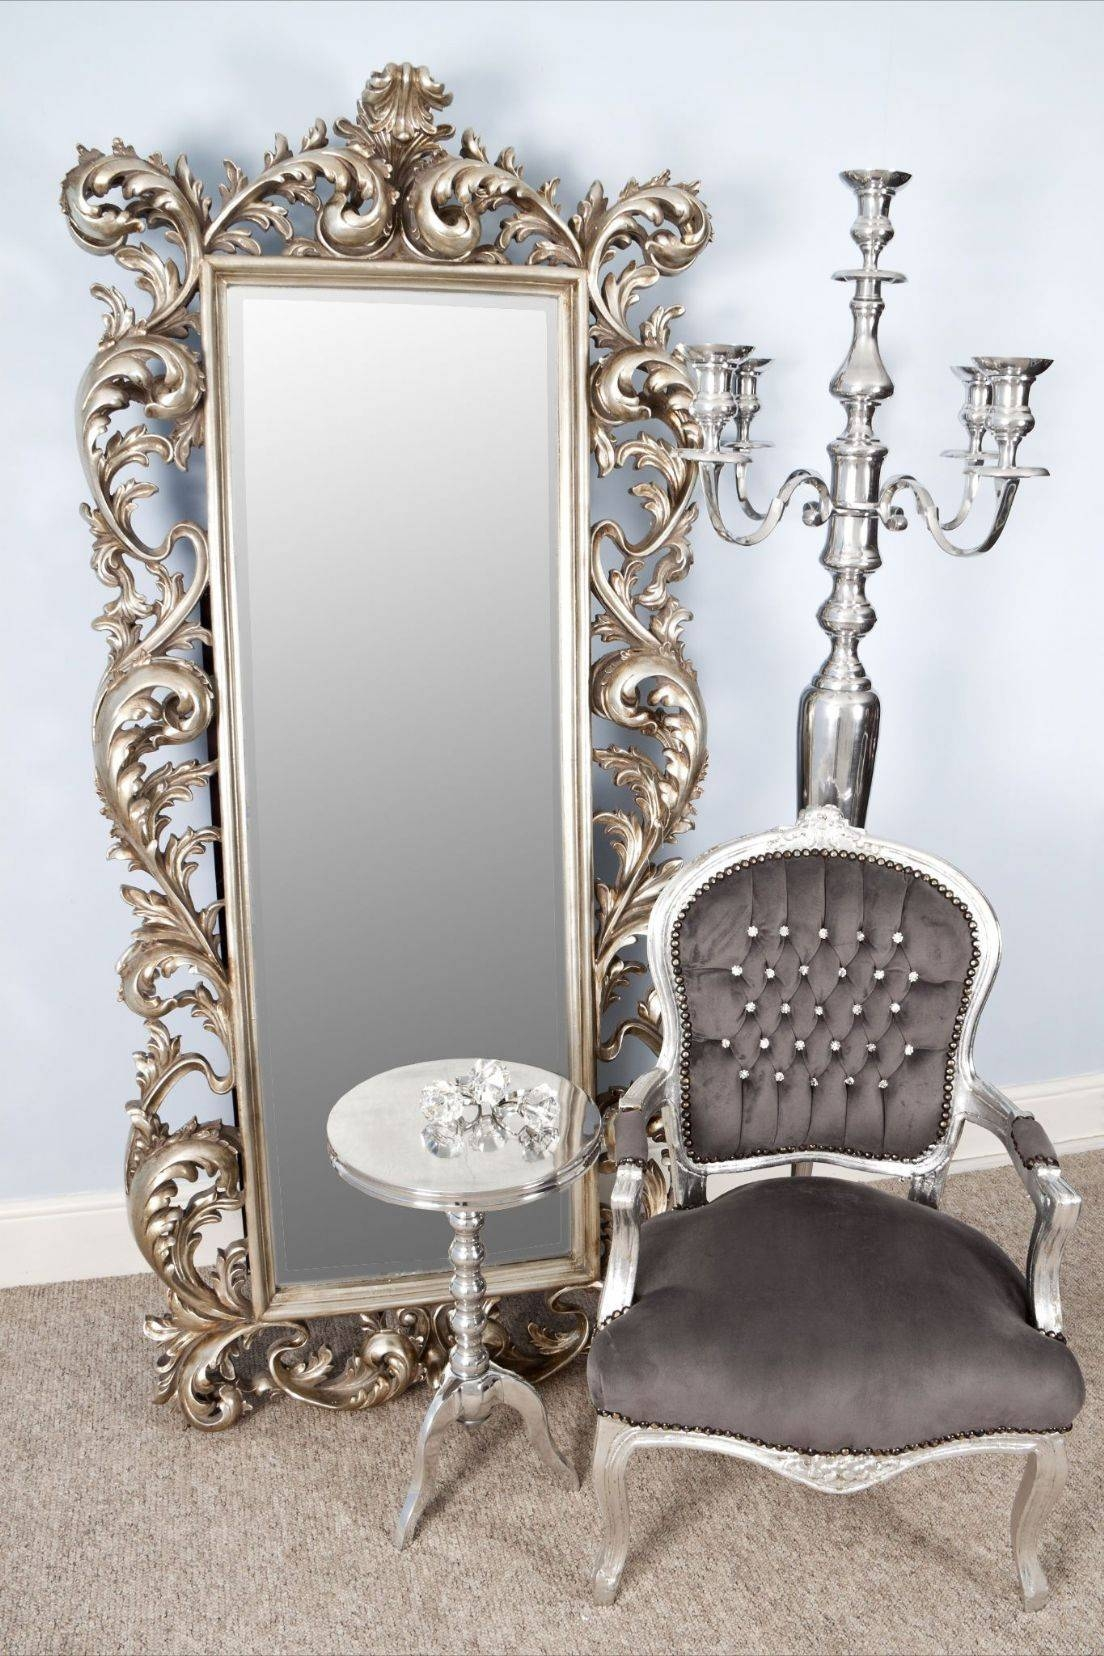 Bedroom Furniture : Window Frame Mirror Antique Wall Mirrors Wall throughout Large Antique Wall Mirrors (Image 9 of 25)